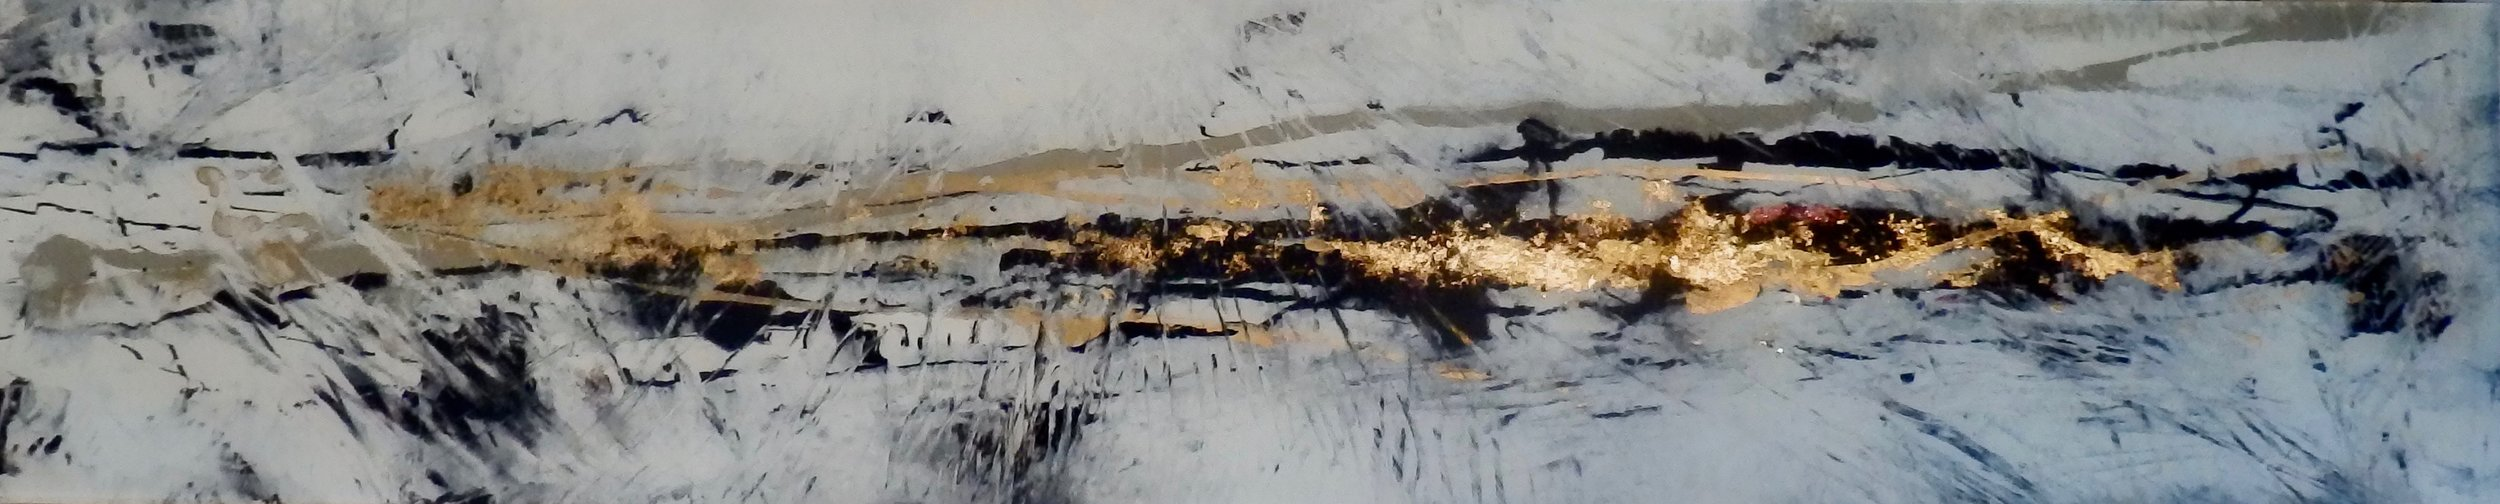 GOLD DUST - Reverse painting on a tempered glass panel, using crystal paper and gold 38 x 83 cm . 15 x 72 in